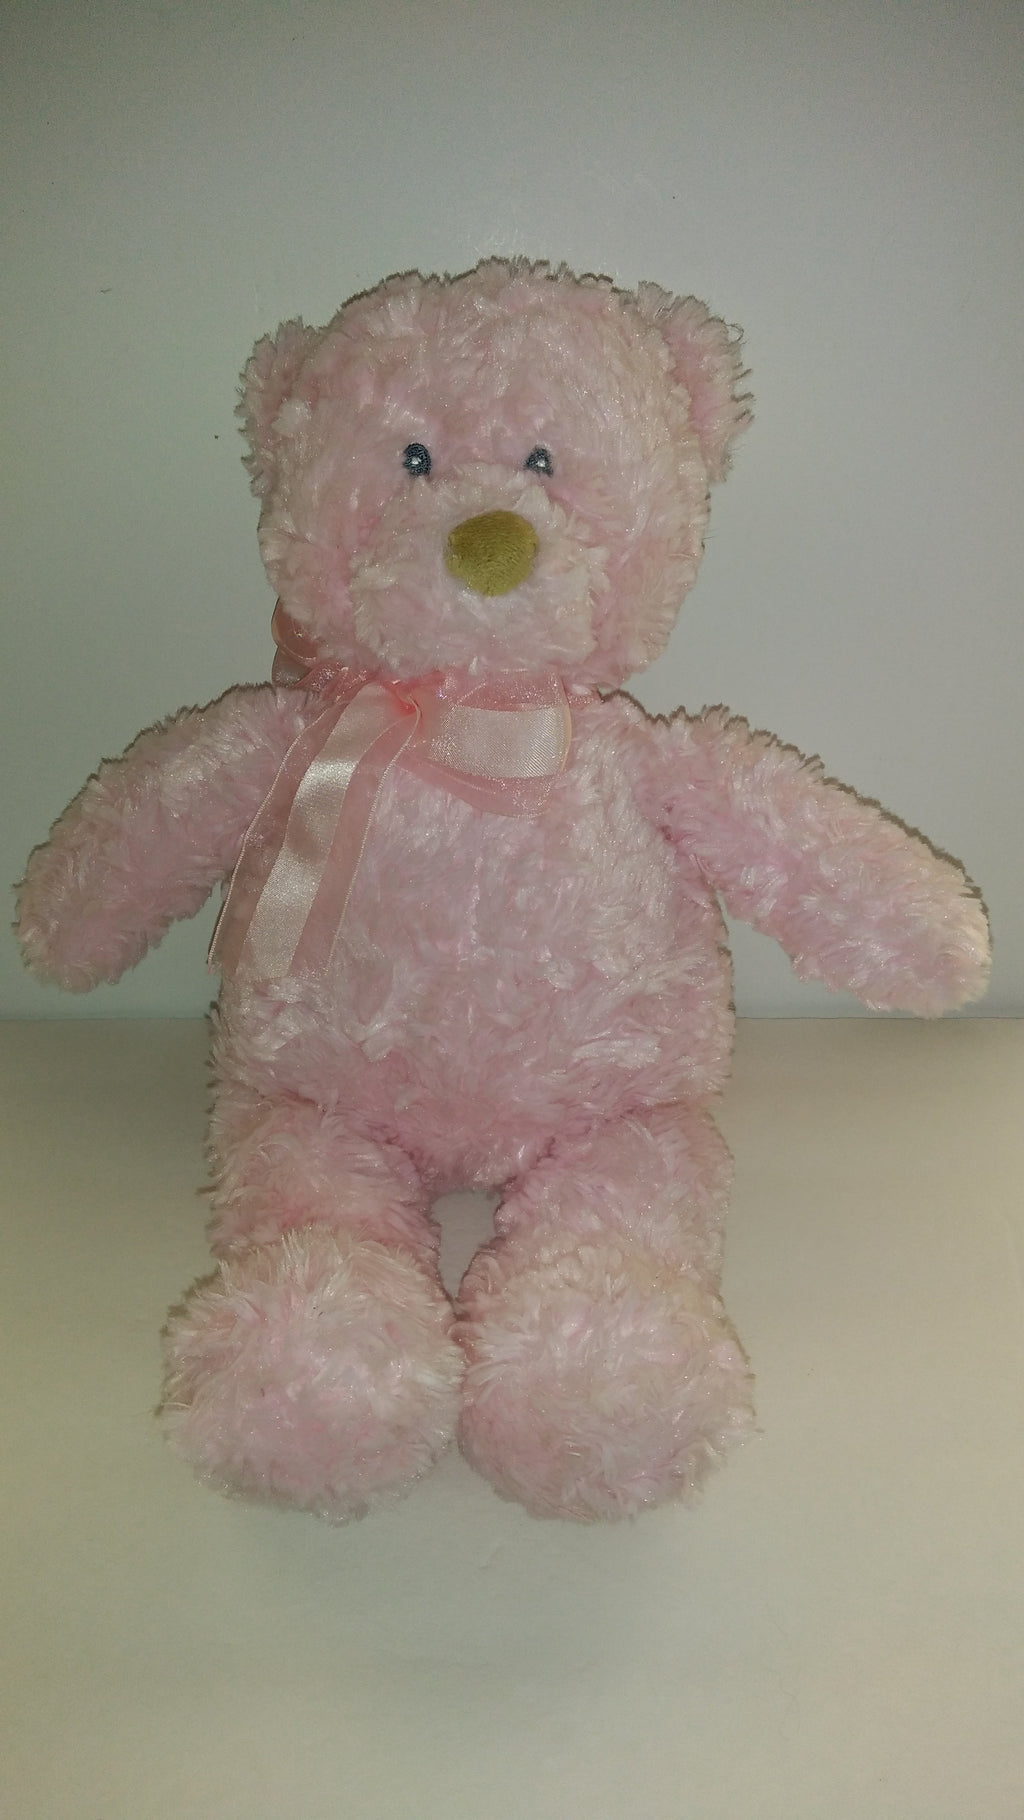 Baby Gund Pink Heartbeat Sound Teddy Bear-We Got Character